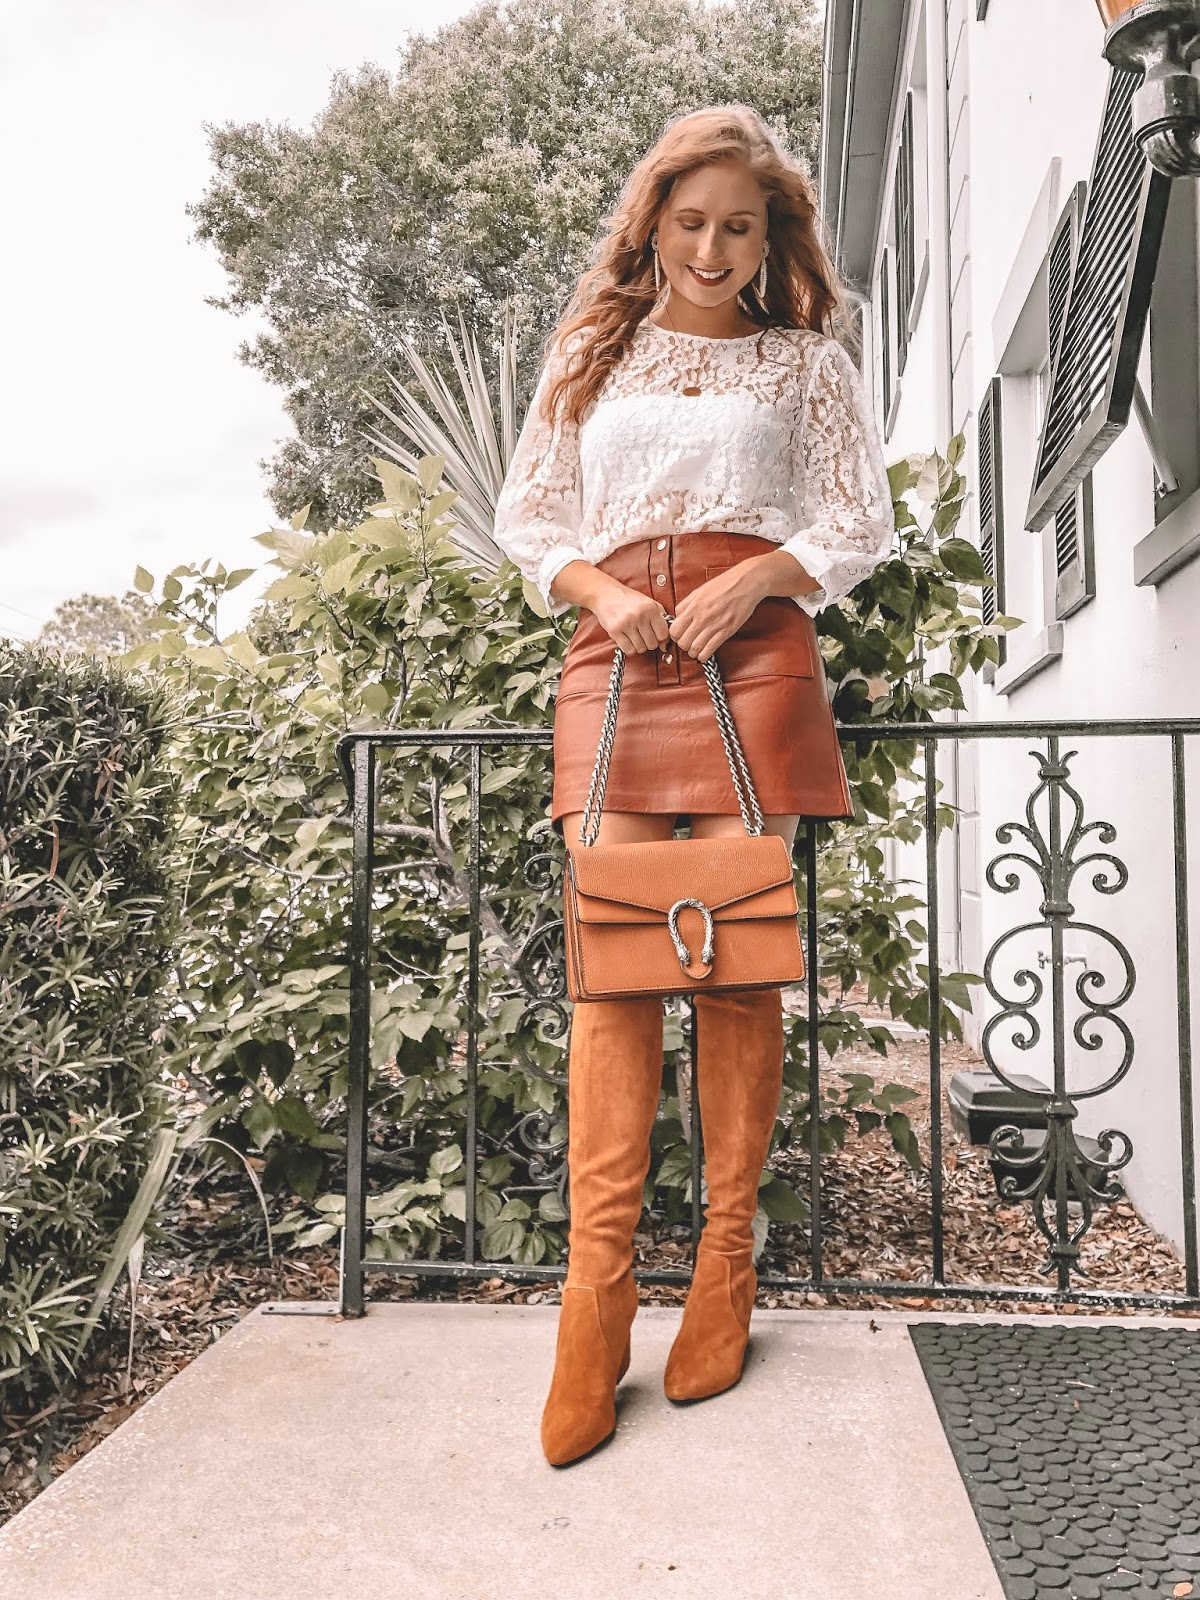 Tampa blogger Amanda Burrows is wearing a red leather skirt from Forever 21 with a long sleeve lace top. She is holding a Gucci shoulder bag in her hands.